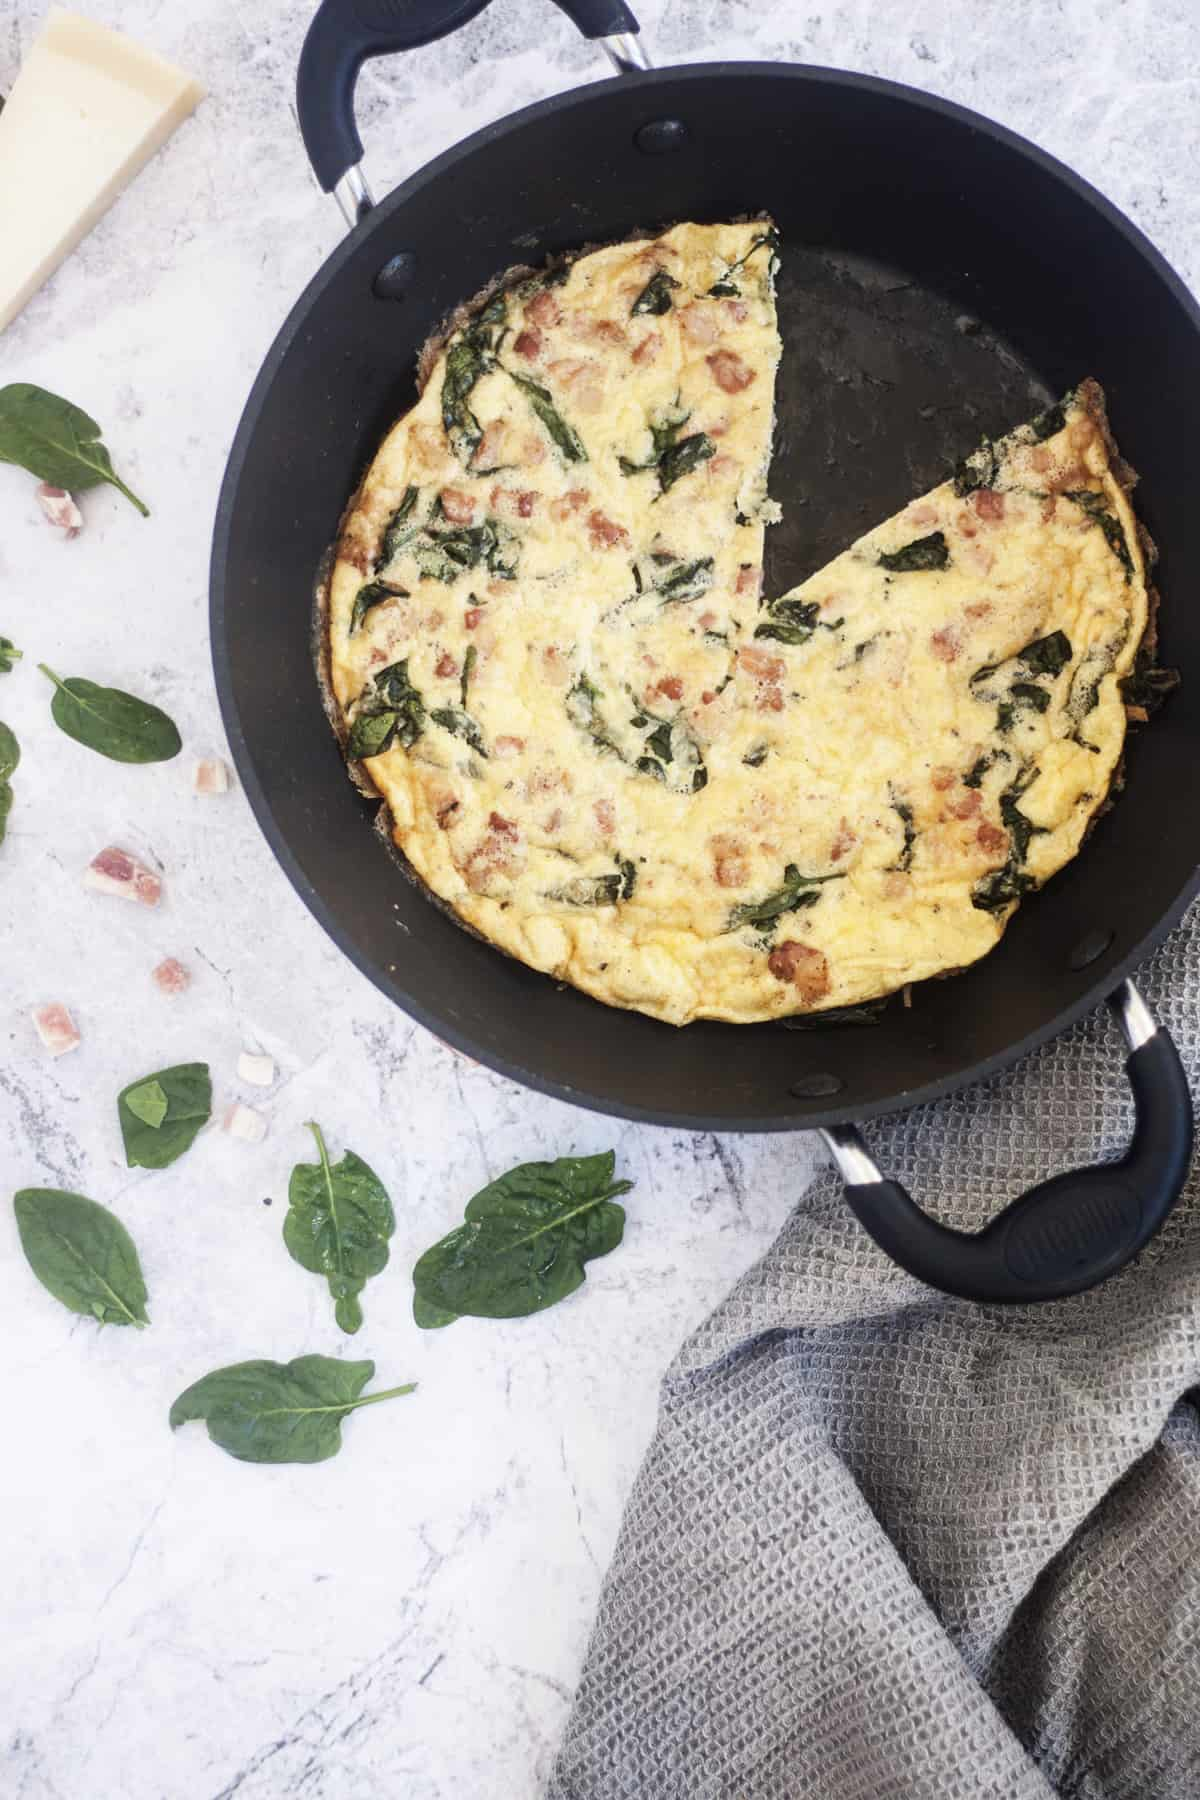 Pancetta Spinach and Cheese Frittata in skillet missing one slice